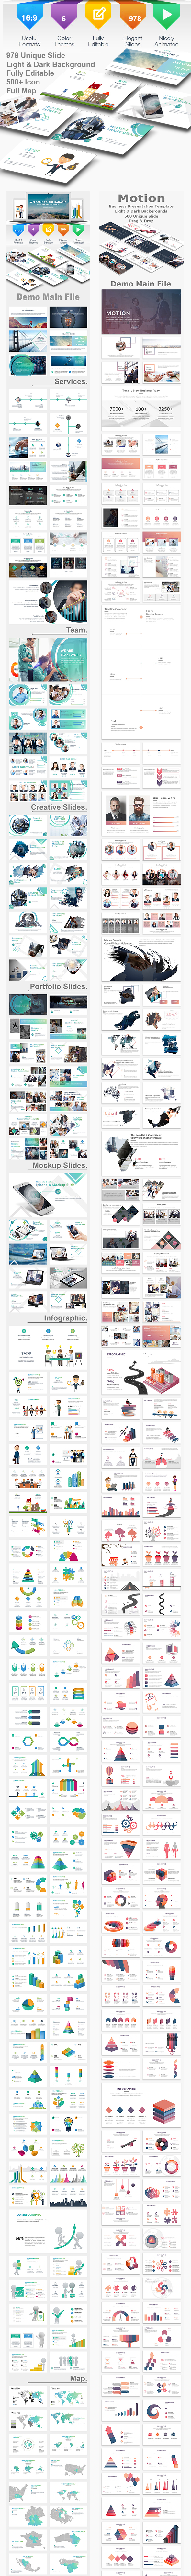 Nimm 3 - 4 in 1 Bundle Business PowerPoint Template - Creative PowerPoint Templates